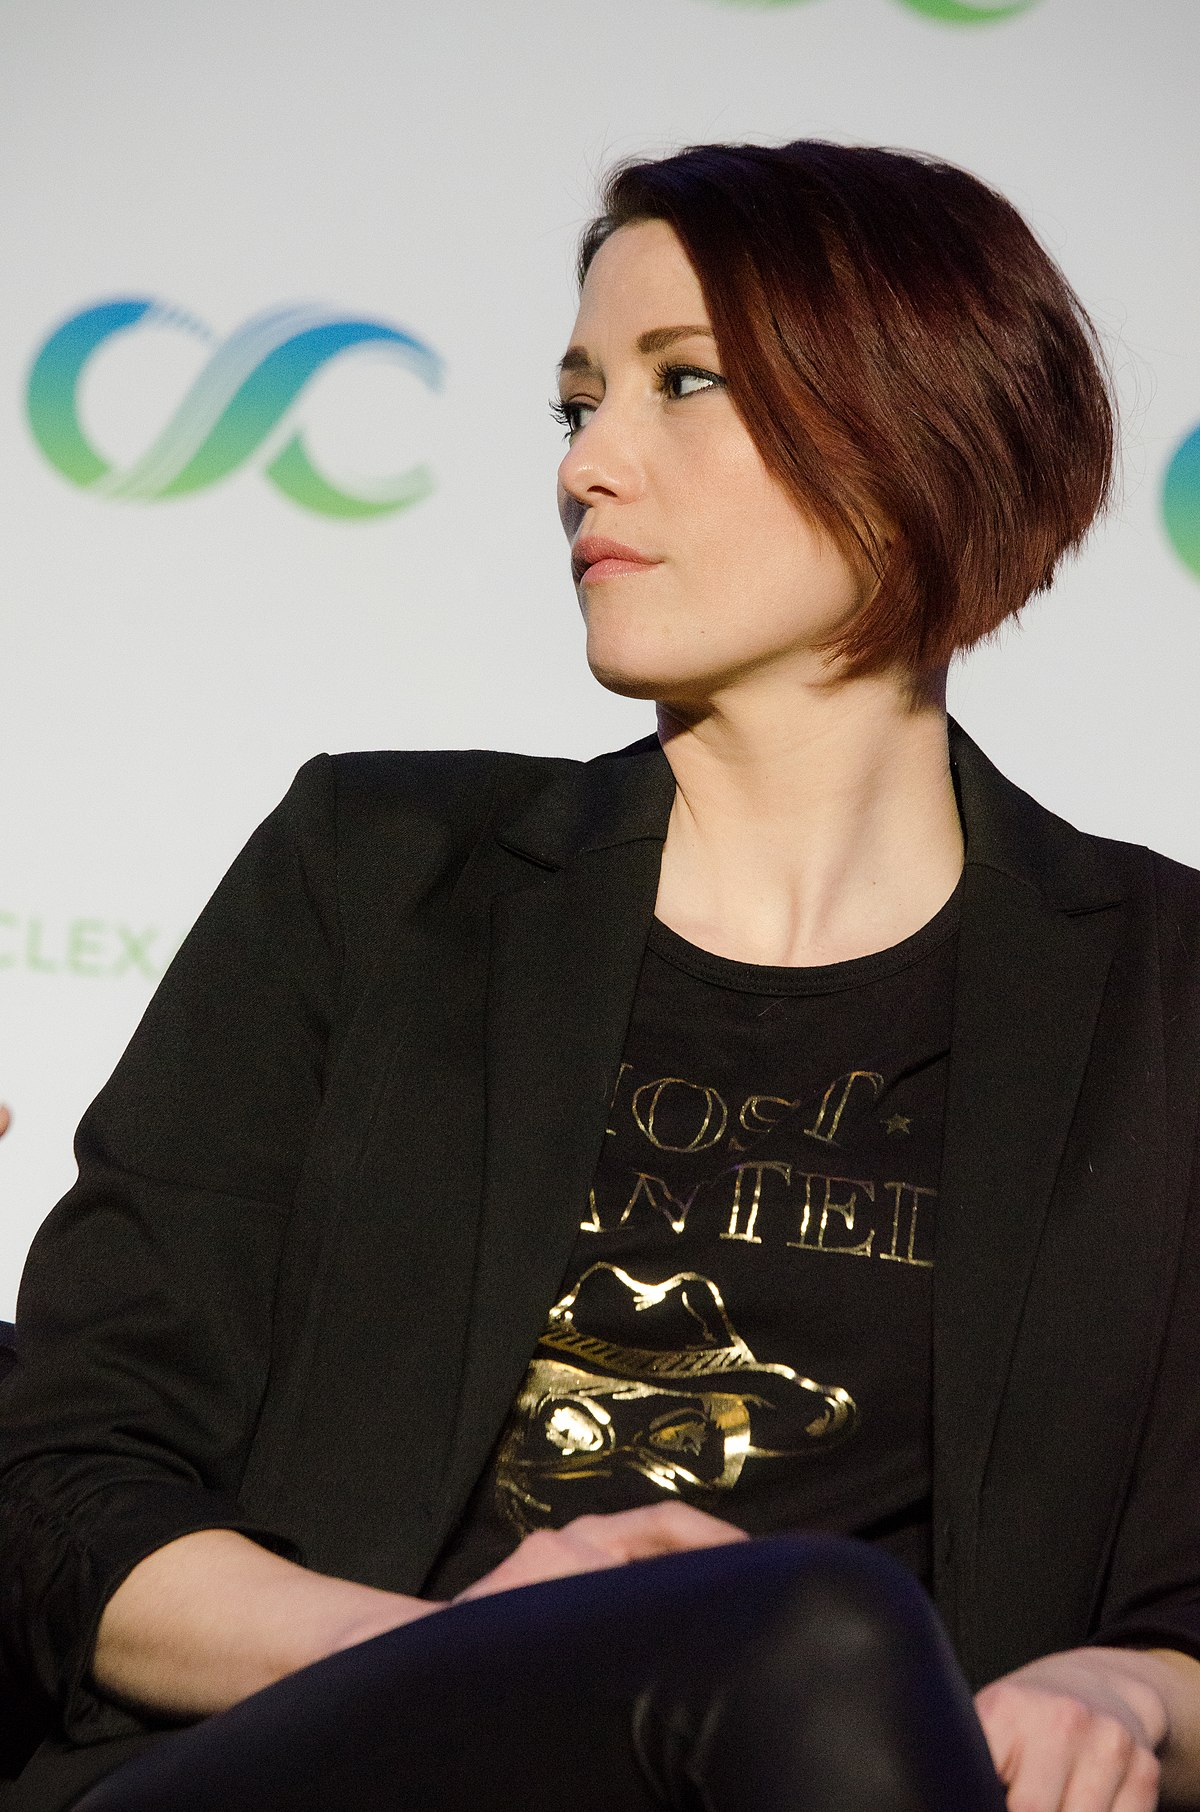 Chyler Leigh – Wikipedia